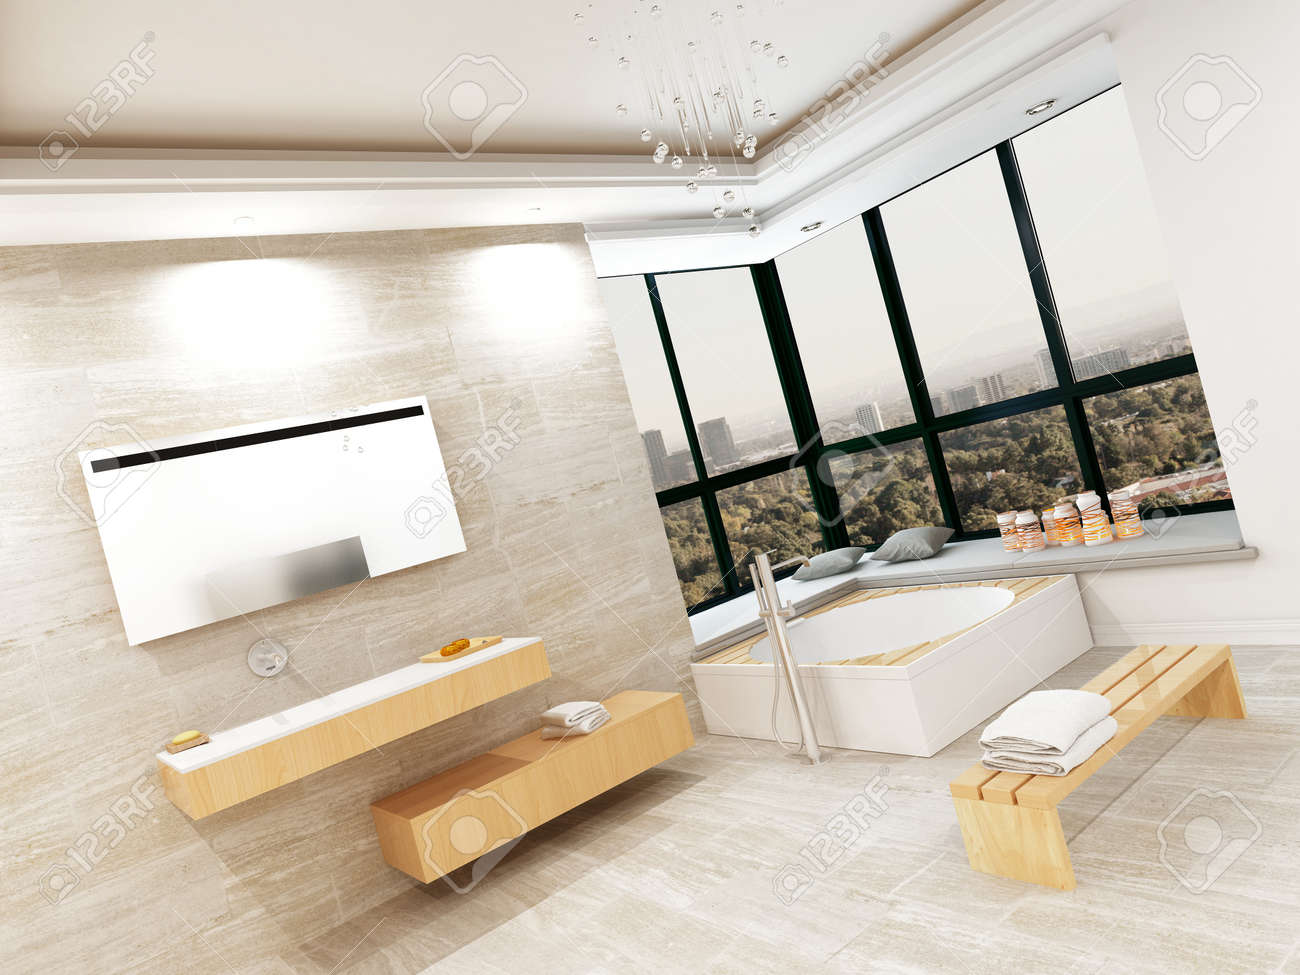 Modern bathroom interior with stone tiles and jacuzzi stock photo